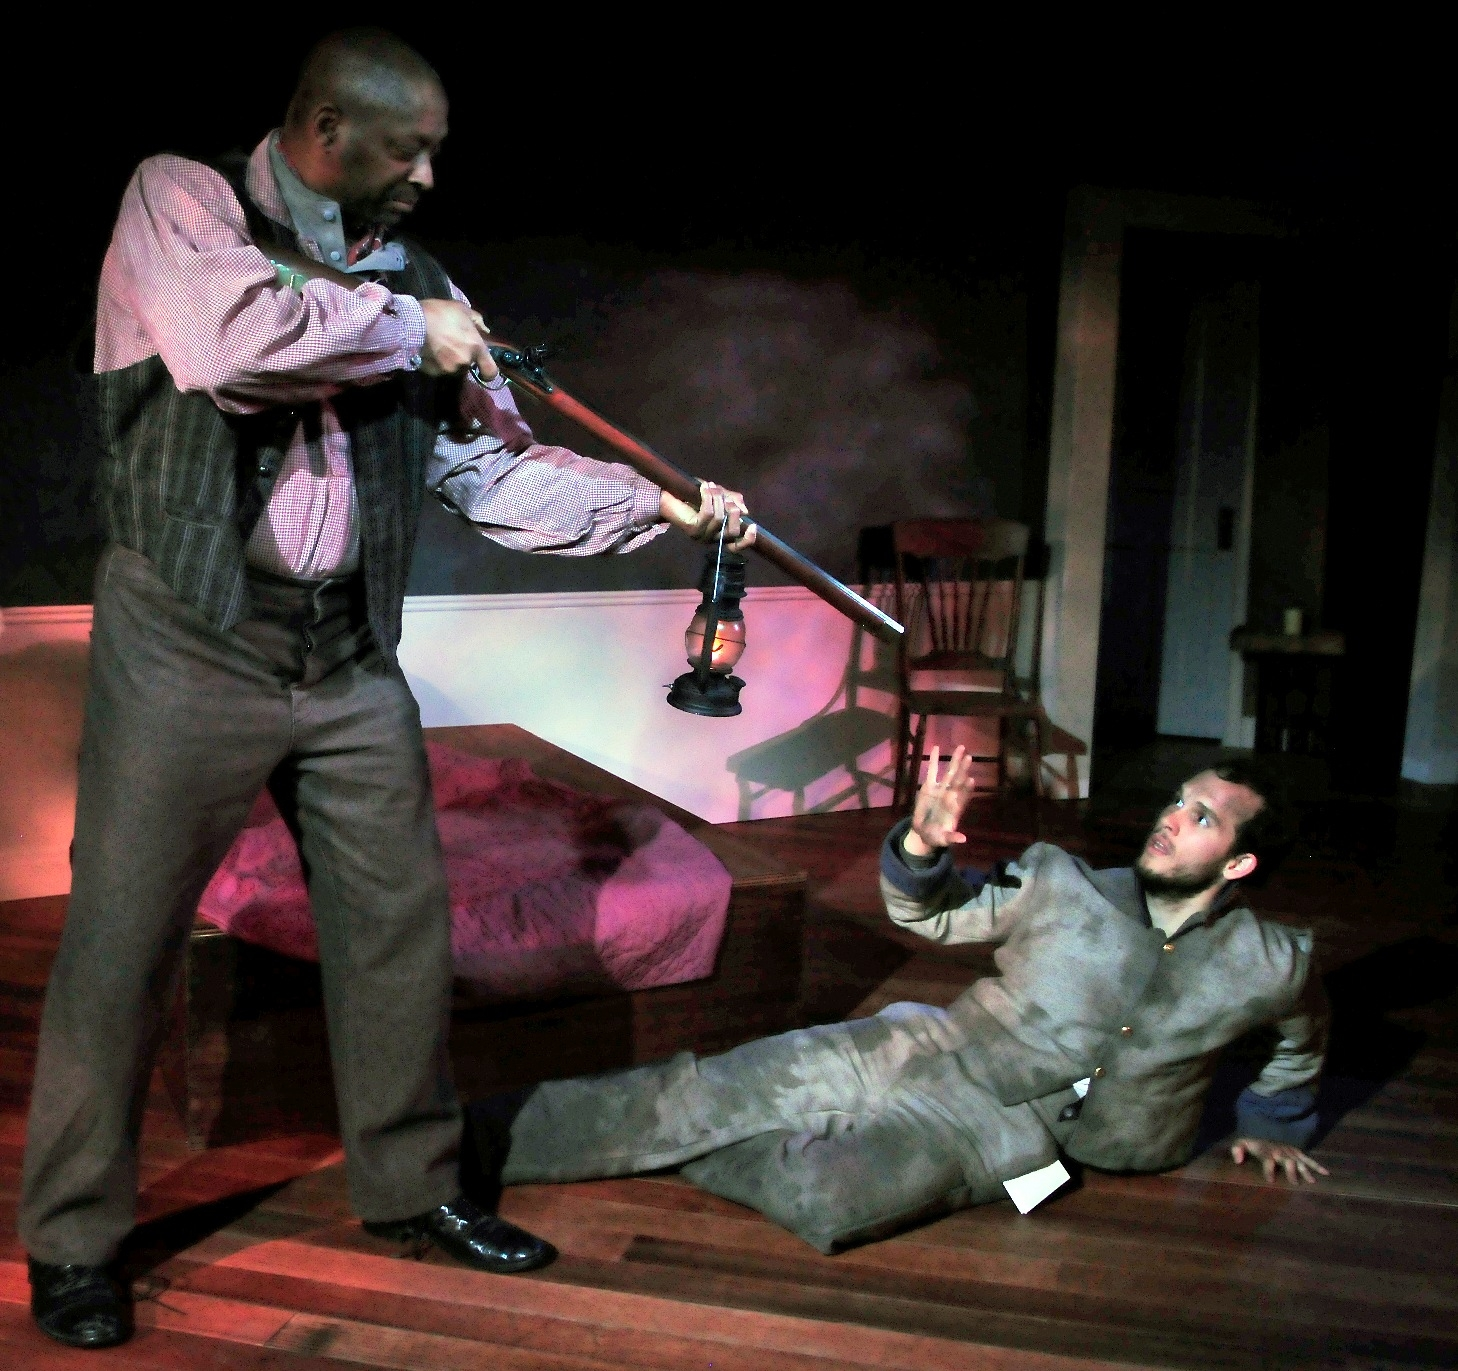 Michael J. Asberry & Sean Nill in The Whipping Man, 2015